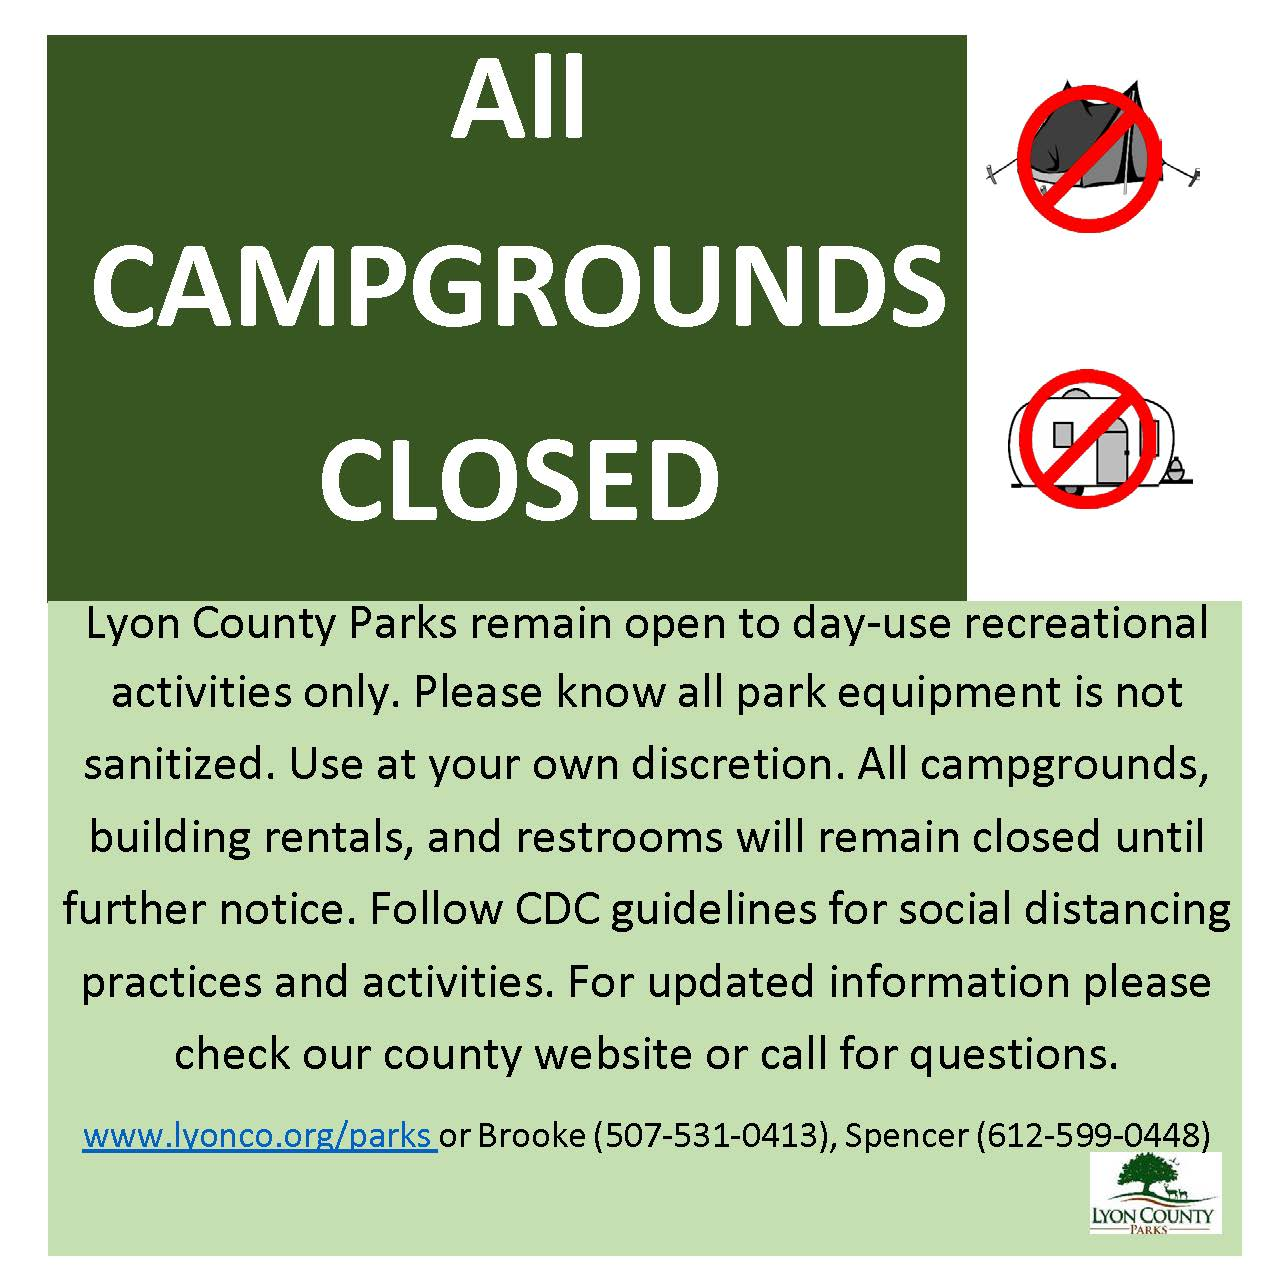 Text, tent and camper with not sign over them. Lyon County parks logo